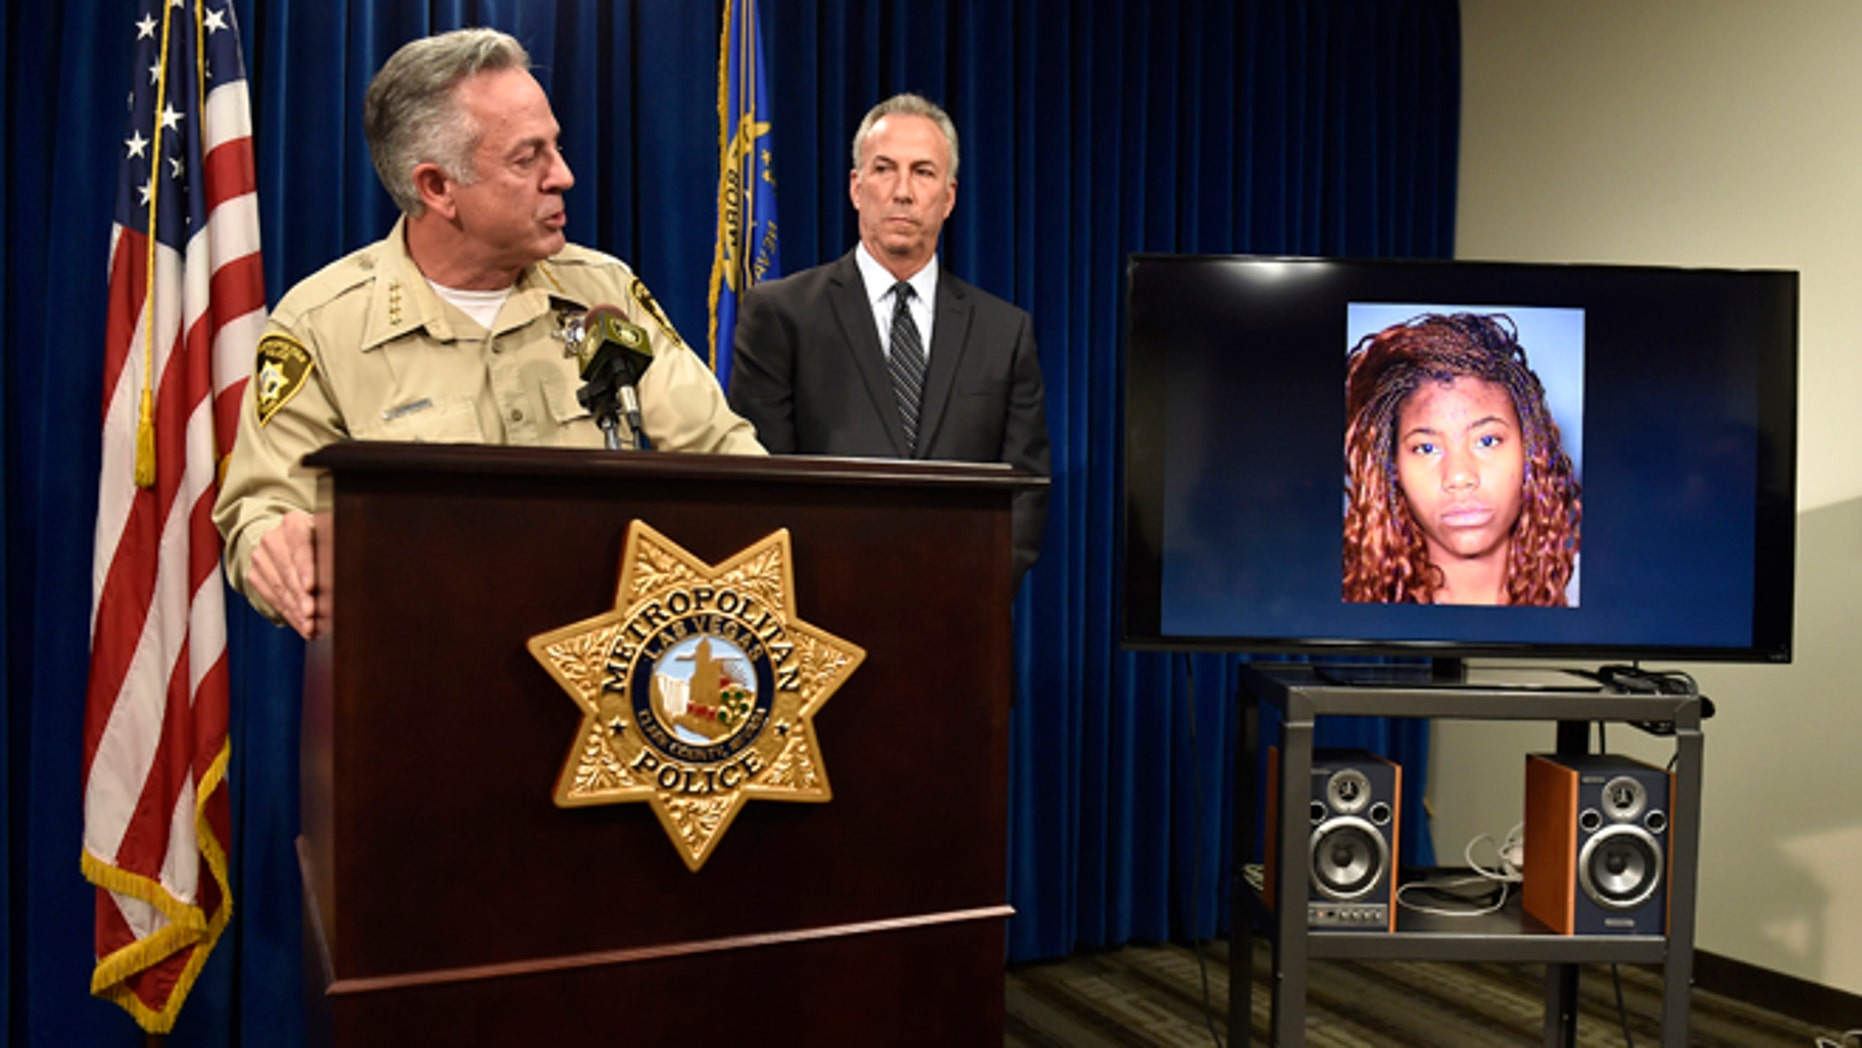 Clark County Sheriff Joe Lombardo, left, and Clark County District Attorney Steve Wolfson attend at a news conference, Monday, Dec. 21, 2015, in Las Vegas. The two officials spoke about the car driven by suspect Lakeisha N. Holloway, pictured on monitor, of Oregon, who police said smashed into crowds of pedestrians on the Las Vegas Strip on Sunday night, killing one person and injuring dozens. (AP Photo/David Becker)